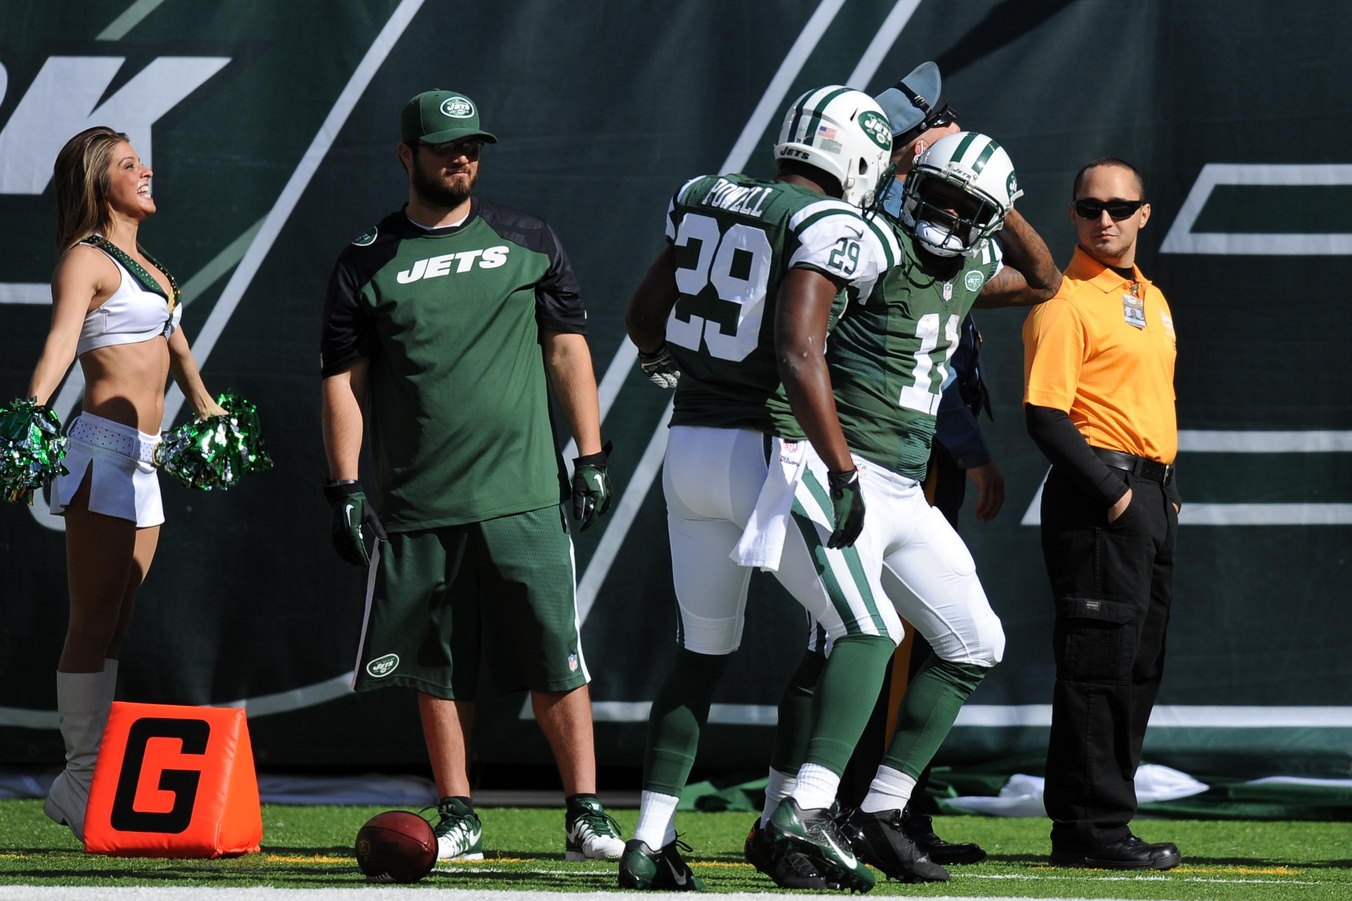 Who Are The New York Jets?